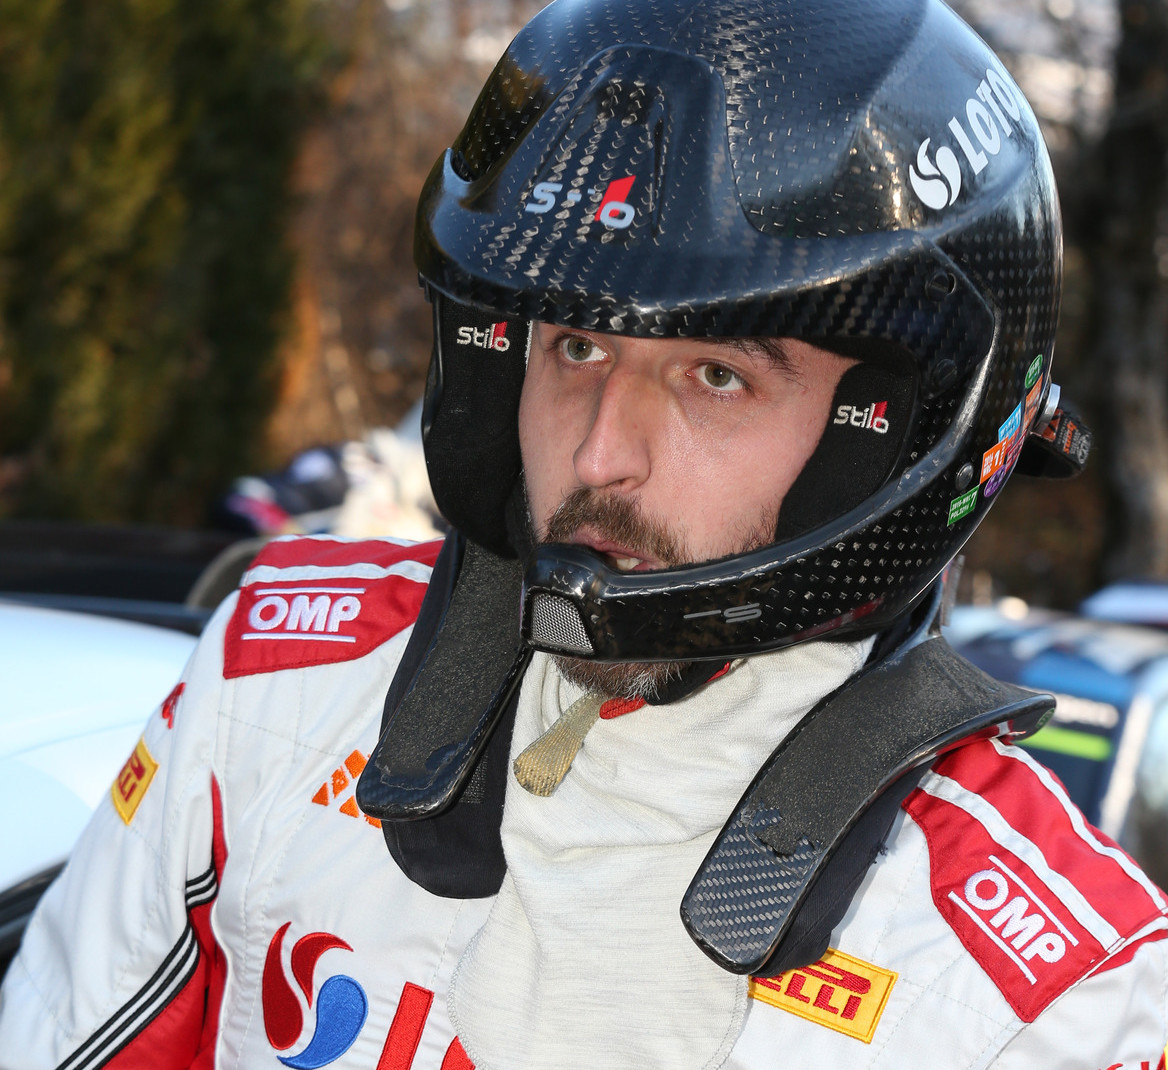 Meet Robert Kubica